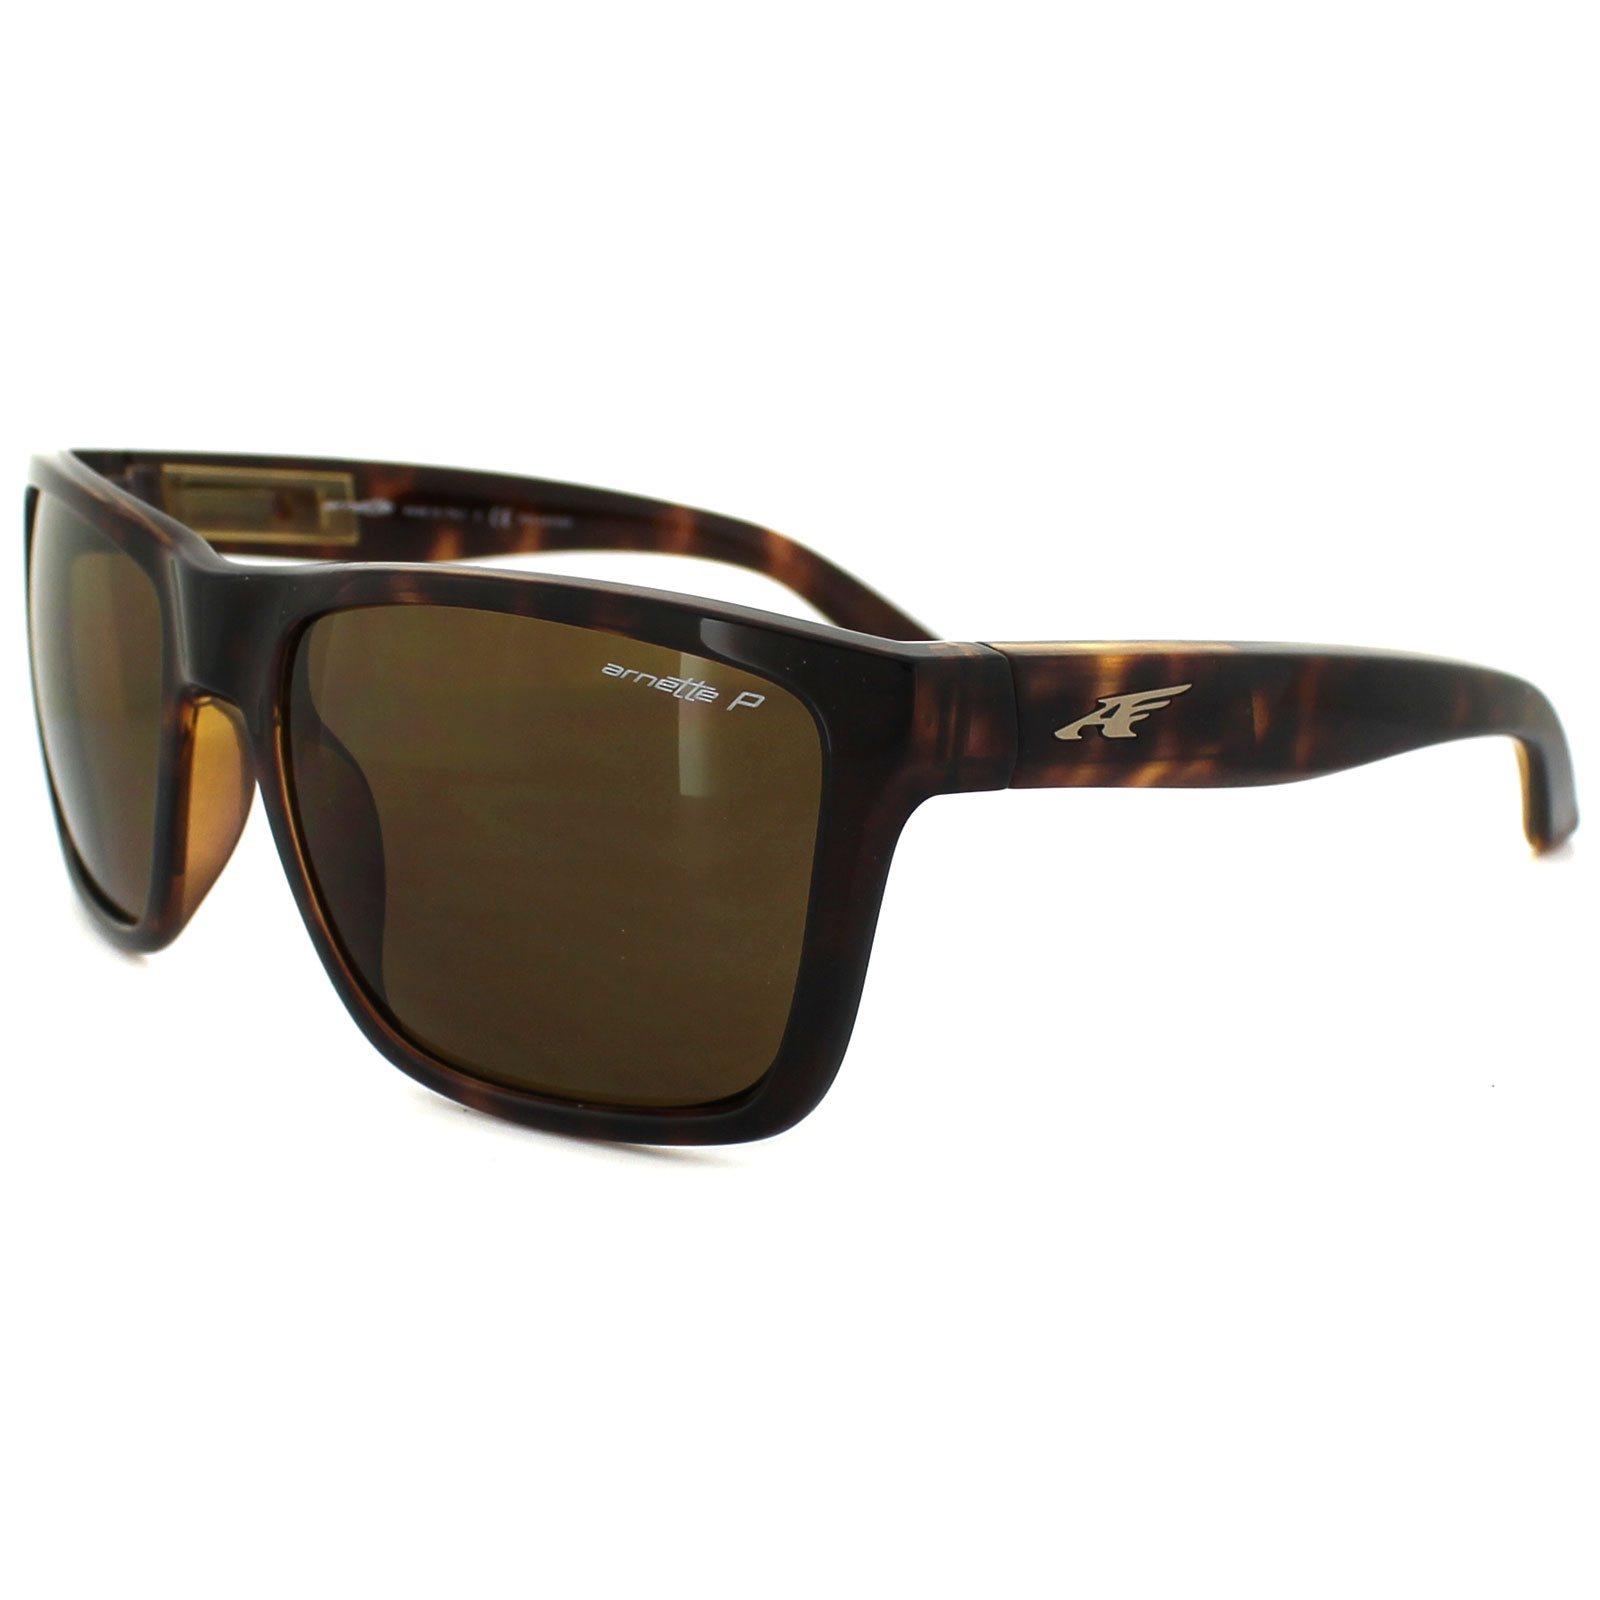 f4c2faad82d Cheap Arnette 4177 Witch Doctor Sunglasses - Discounted Sunglasses